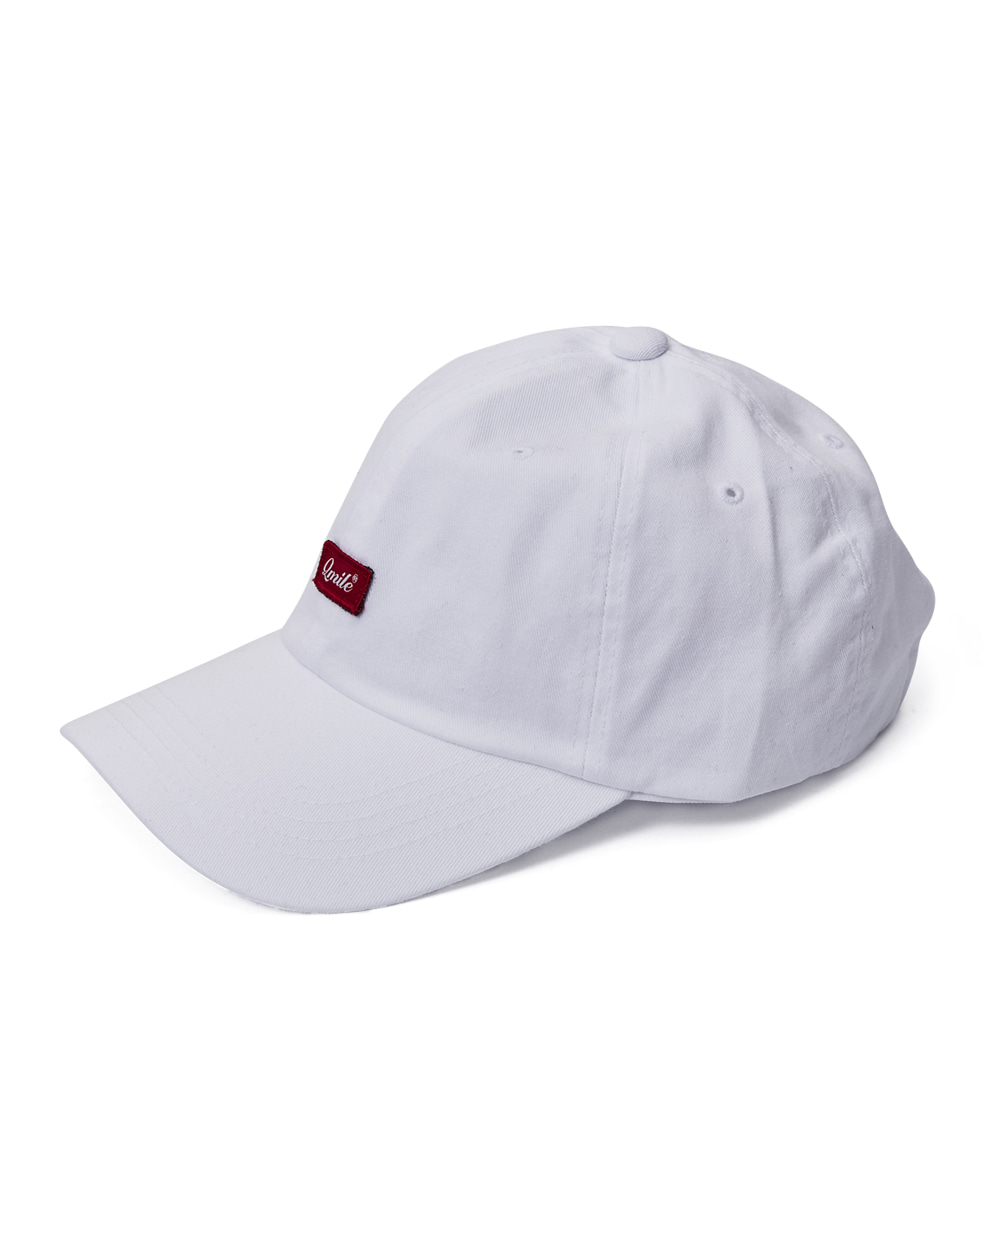 SCRIPT RED BOX BALLCAP | WHITE